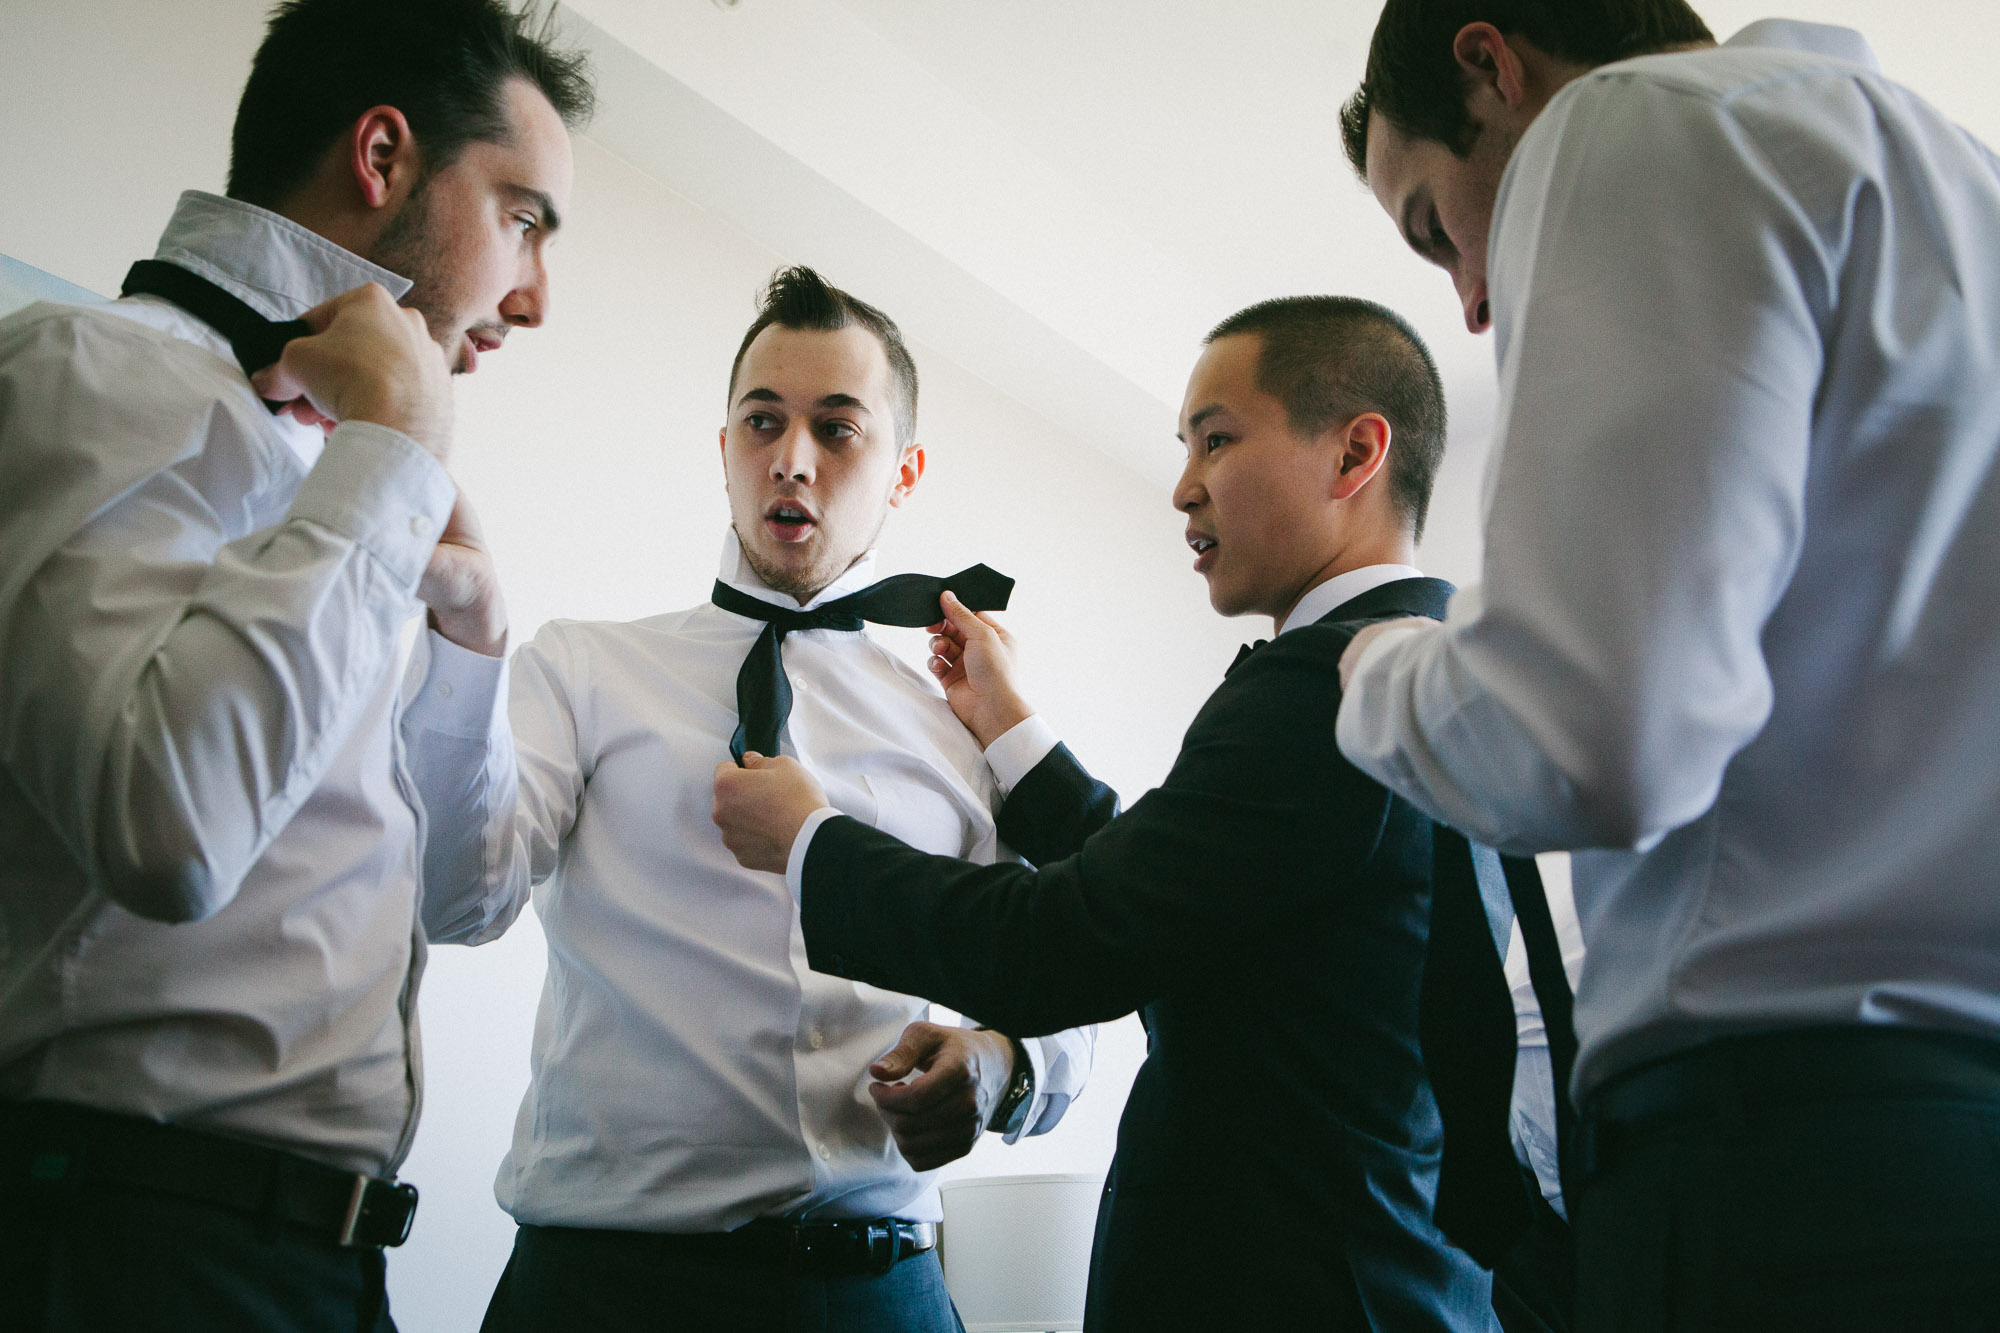 groom-preparations-before-wedding